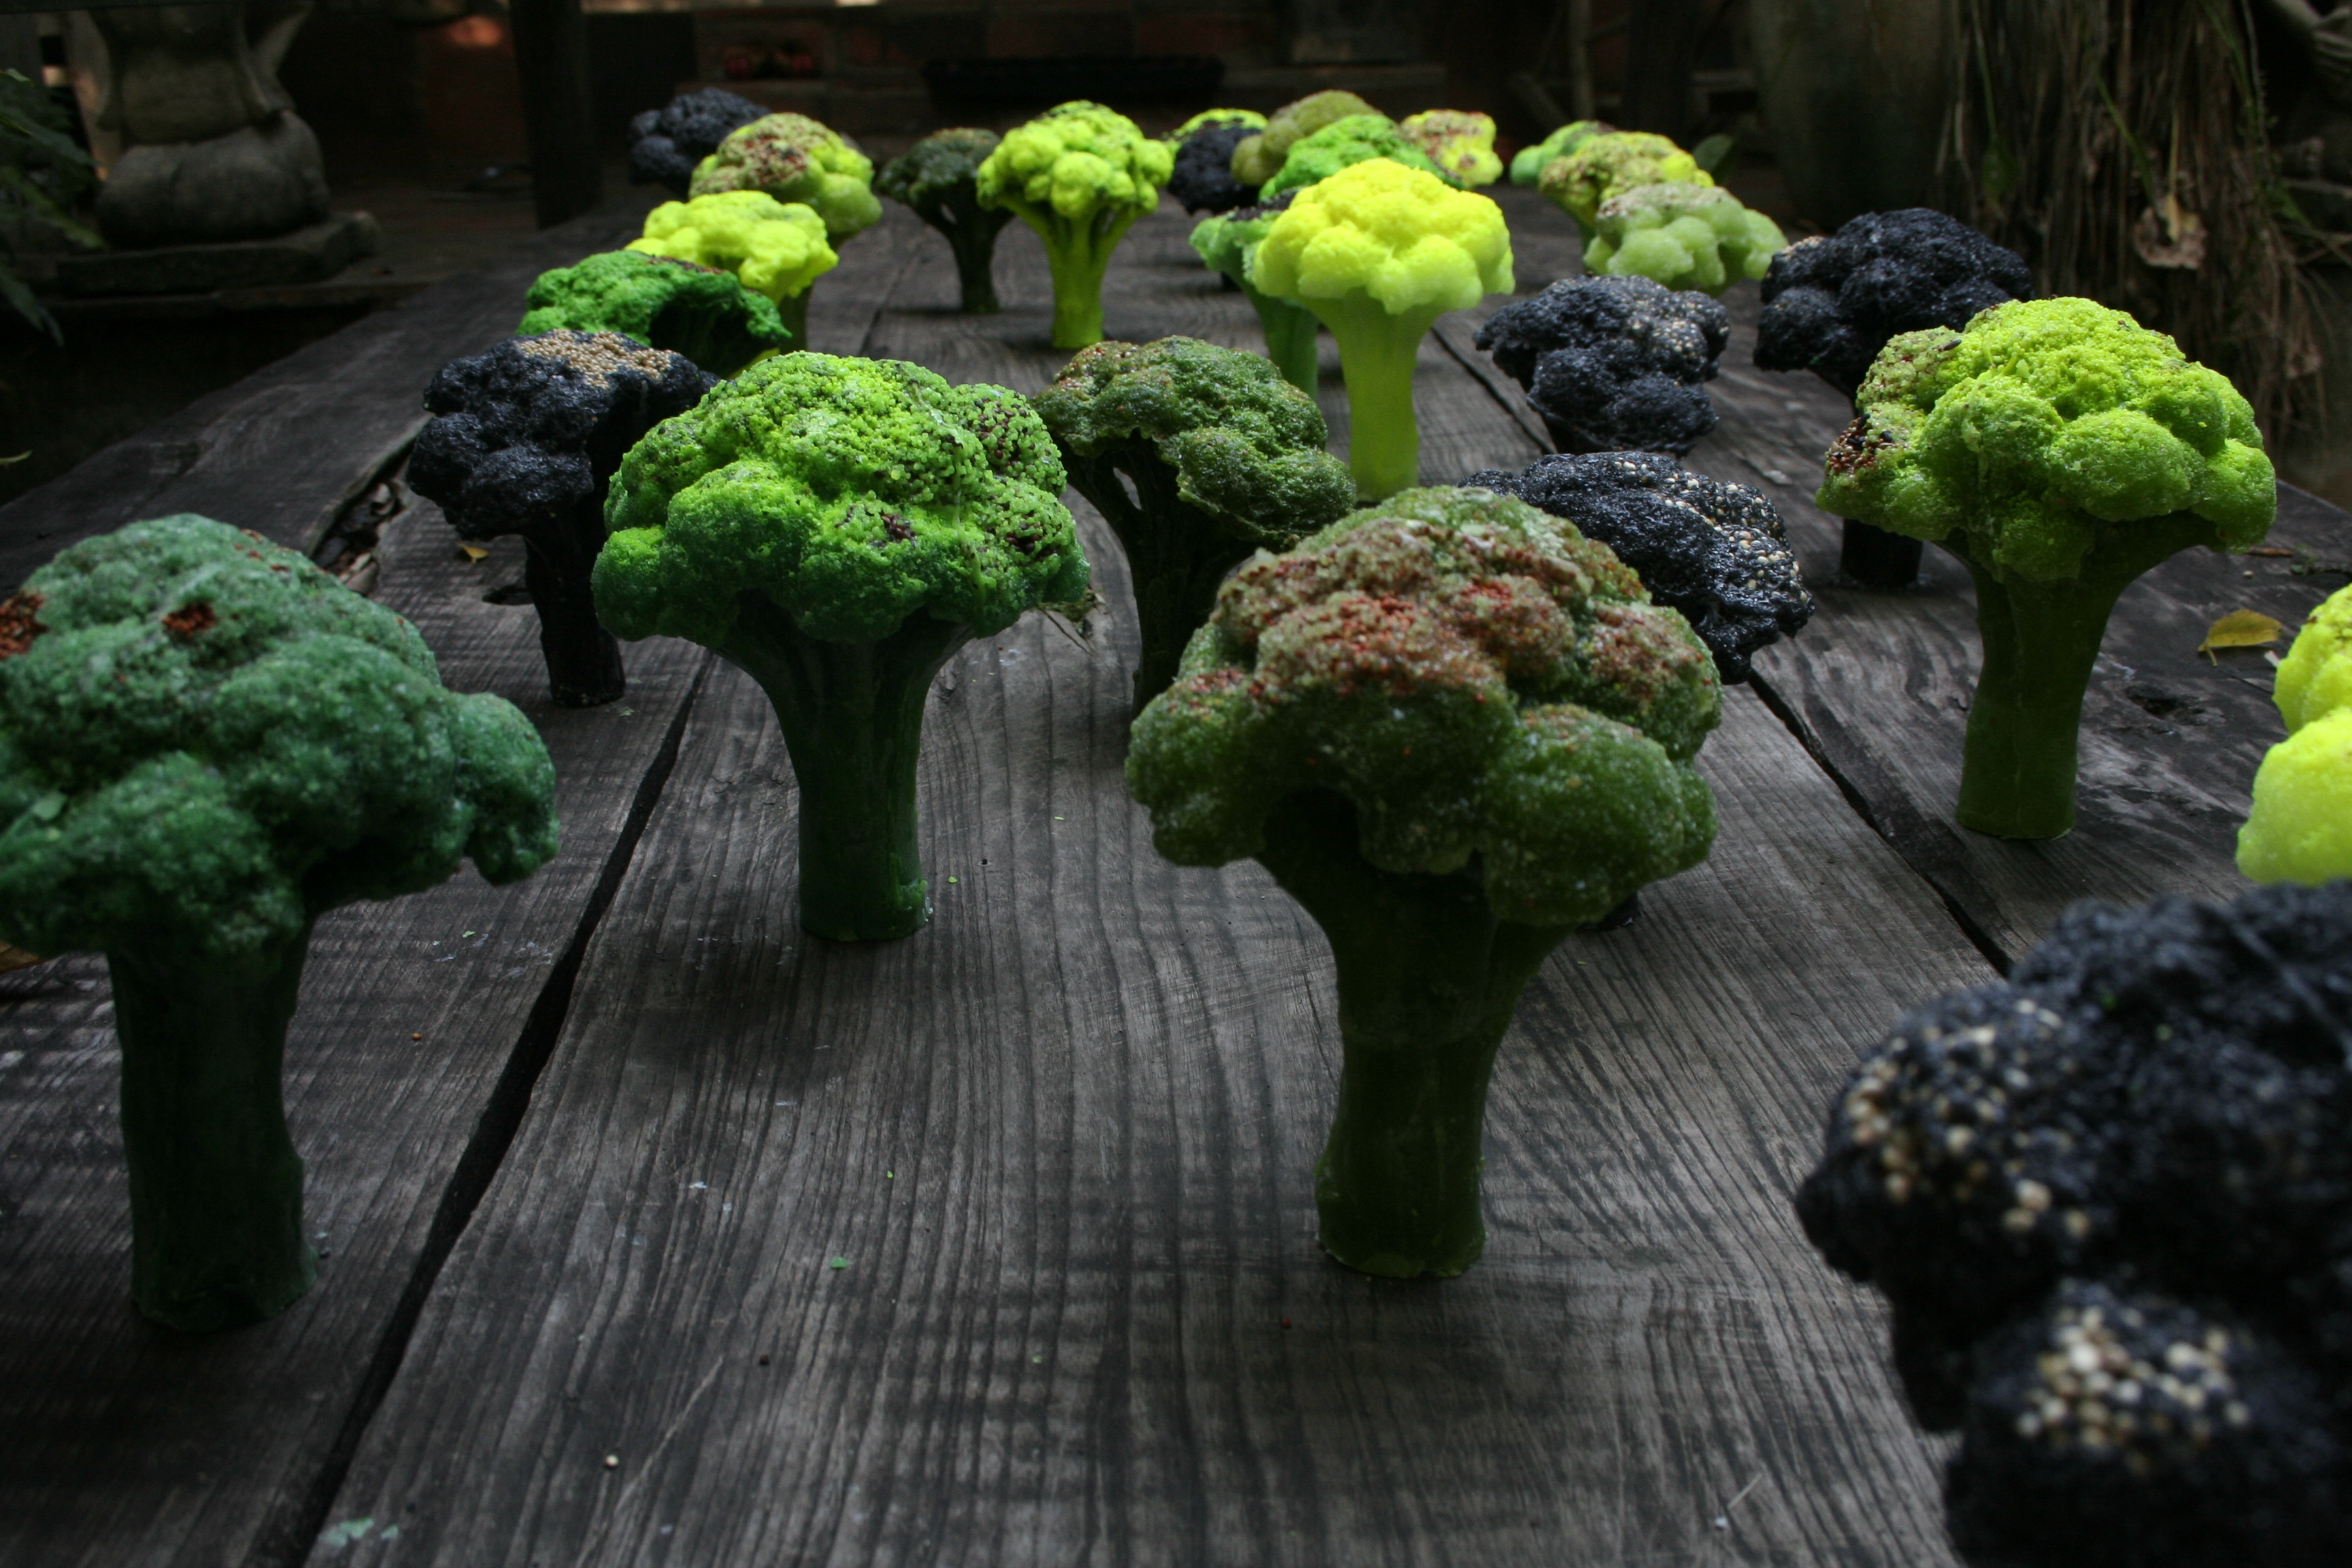 detail installation, broccoli trees, wax, seeds.